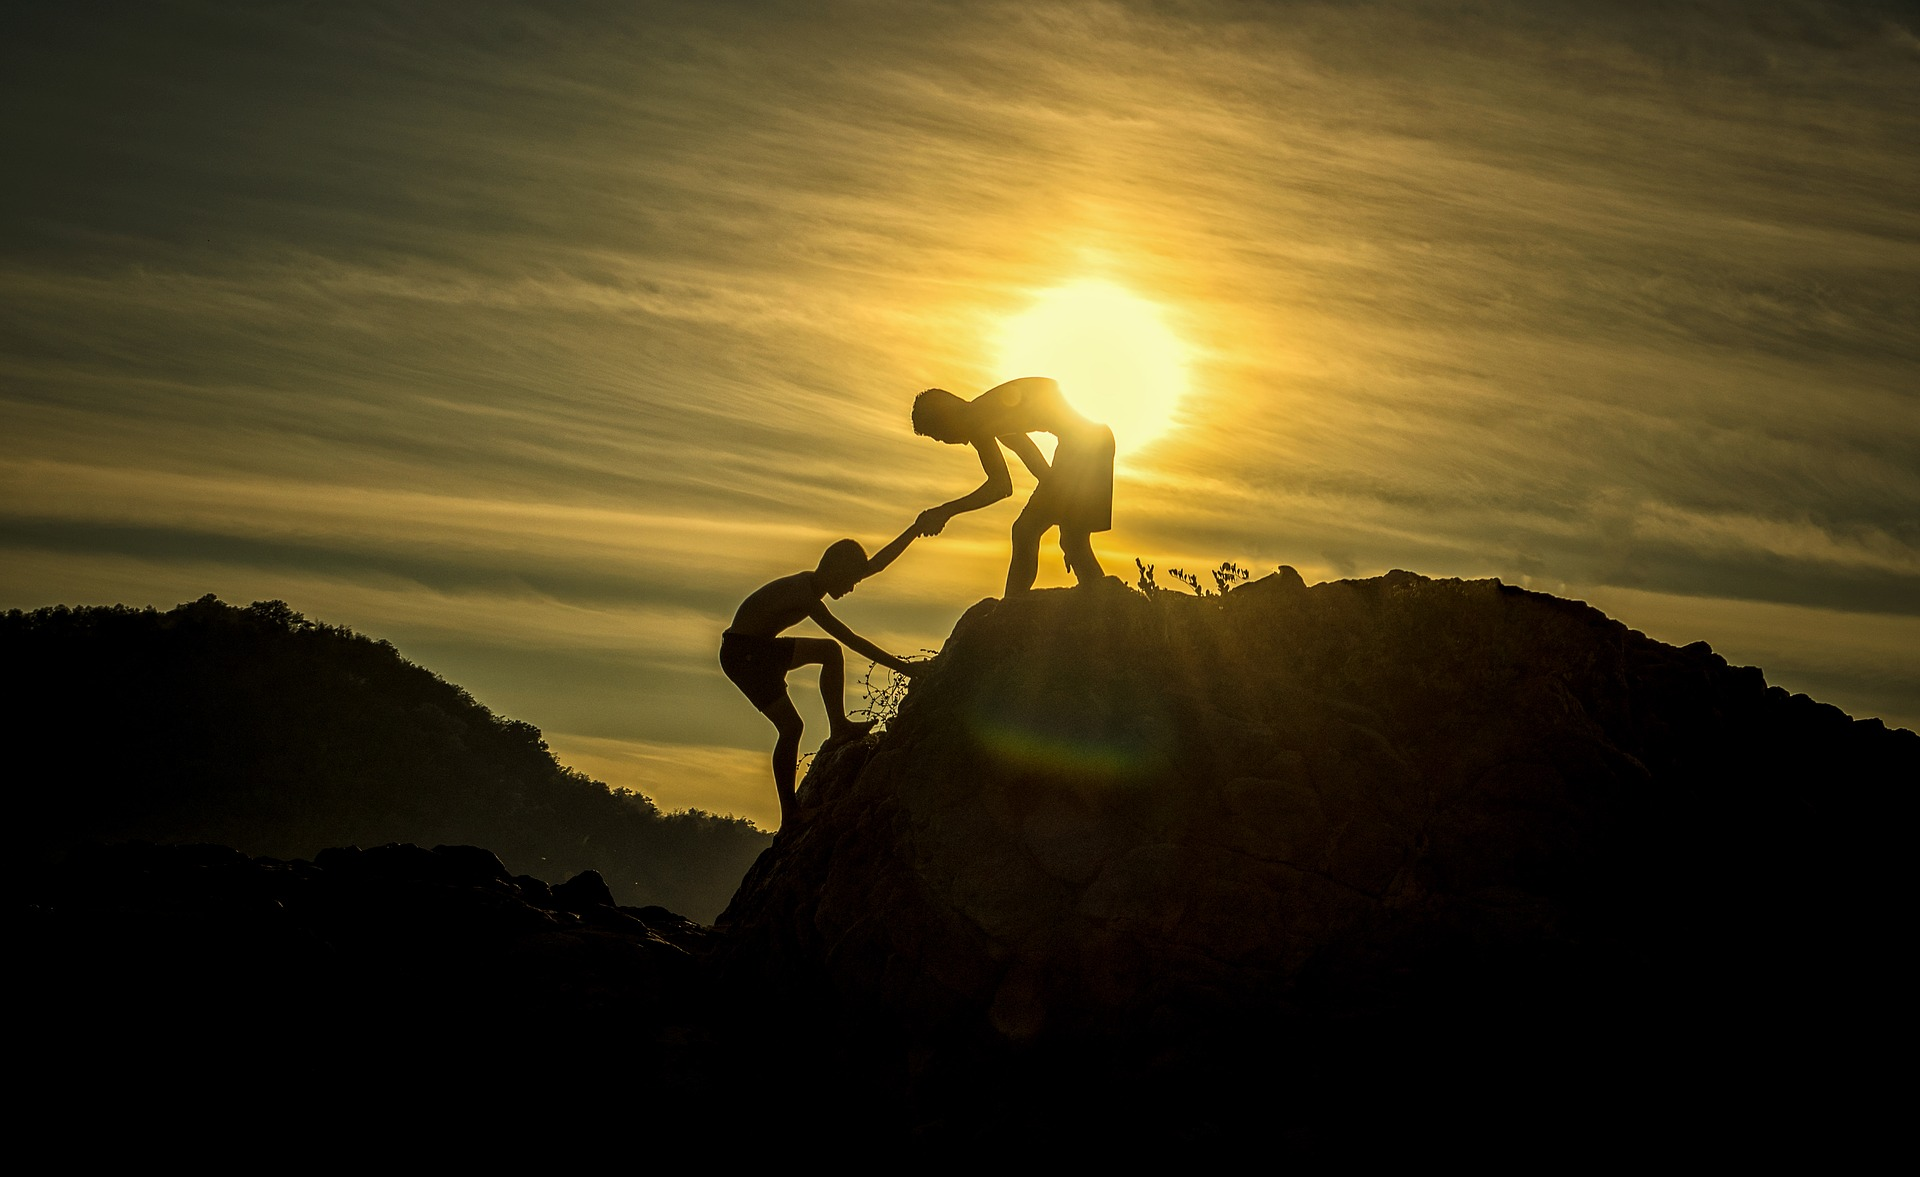 Two silhouettes climbing a hill at sunrise or sunset